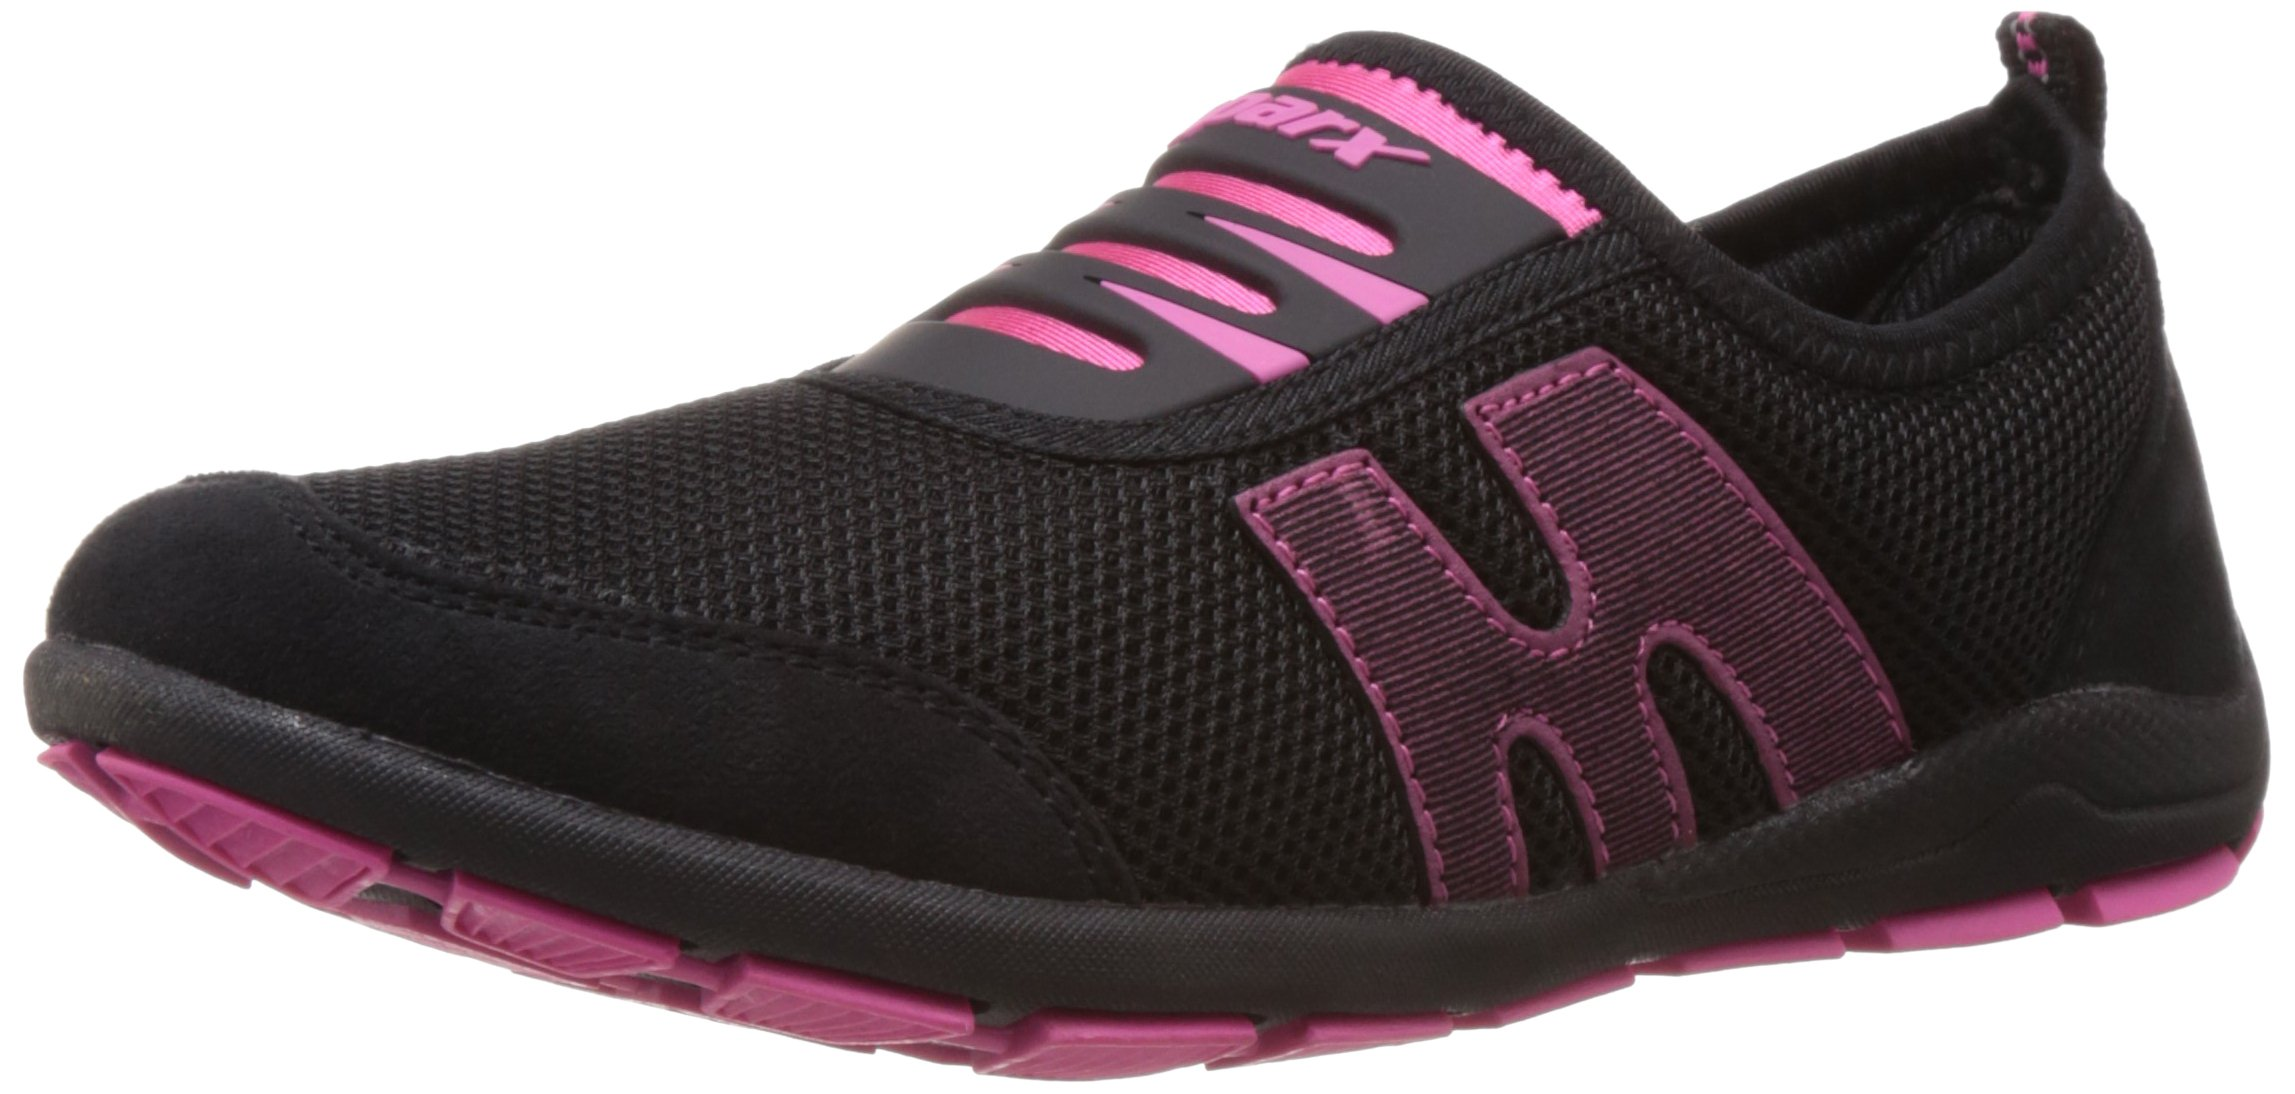 Sparx Women's Nordic Walking Shoes